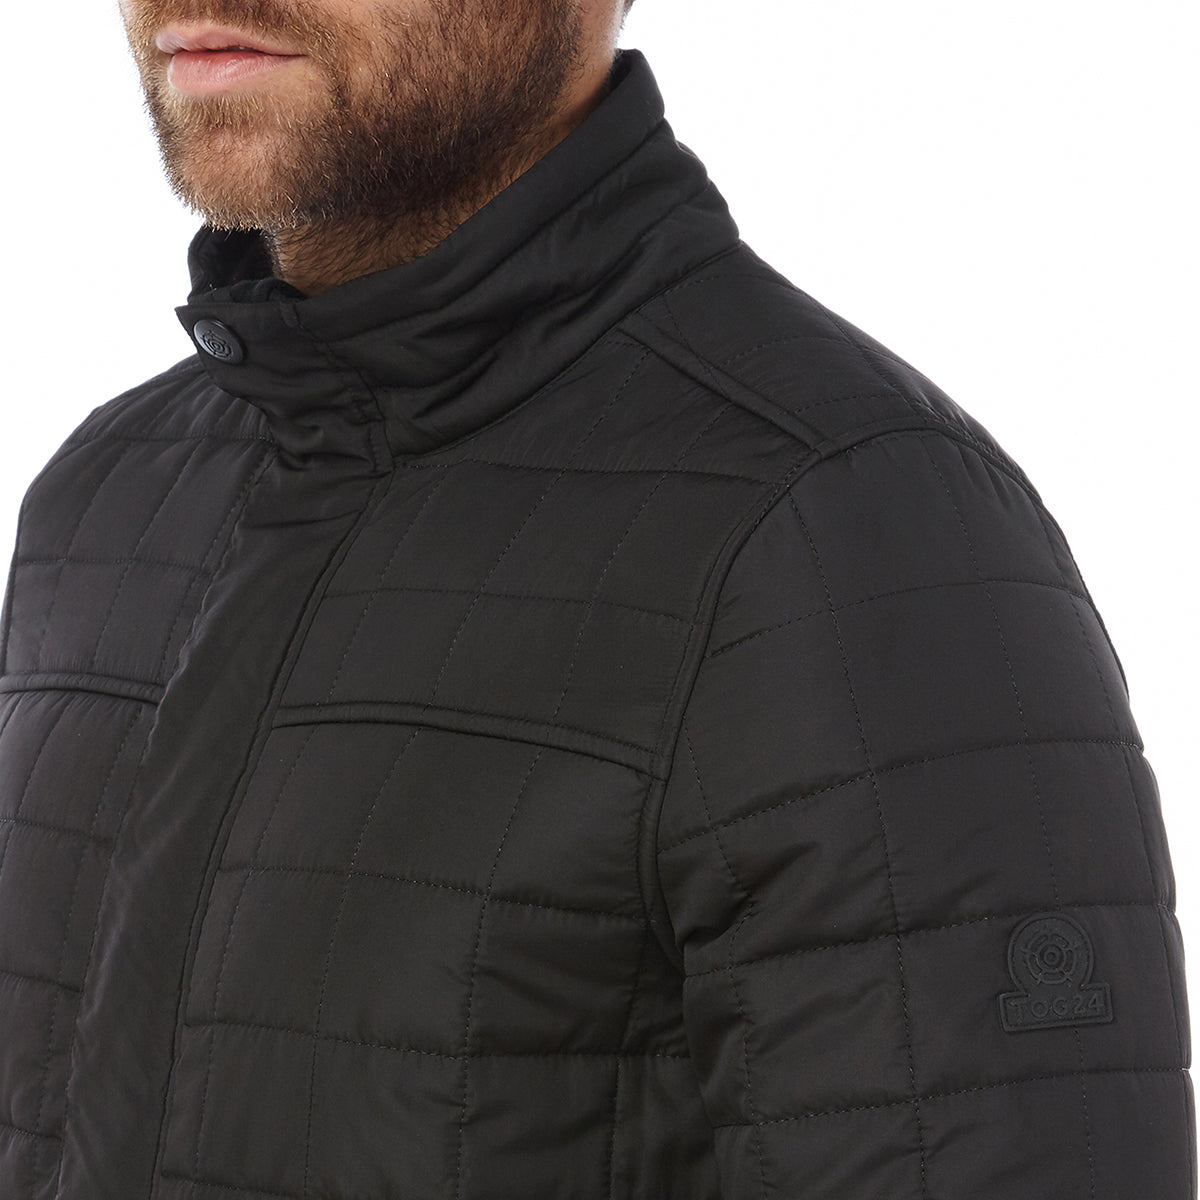 Dearne Mens TCZ Thermal Jacket - Black image 4